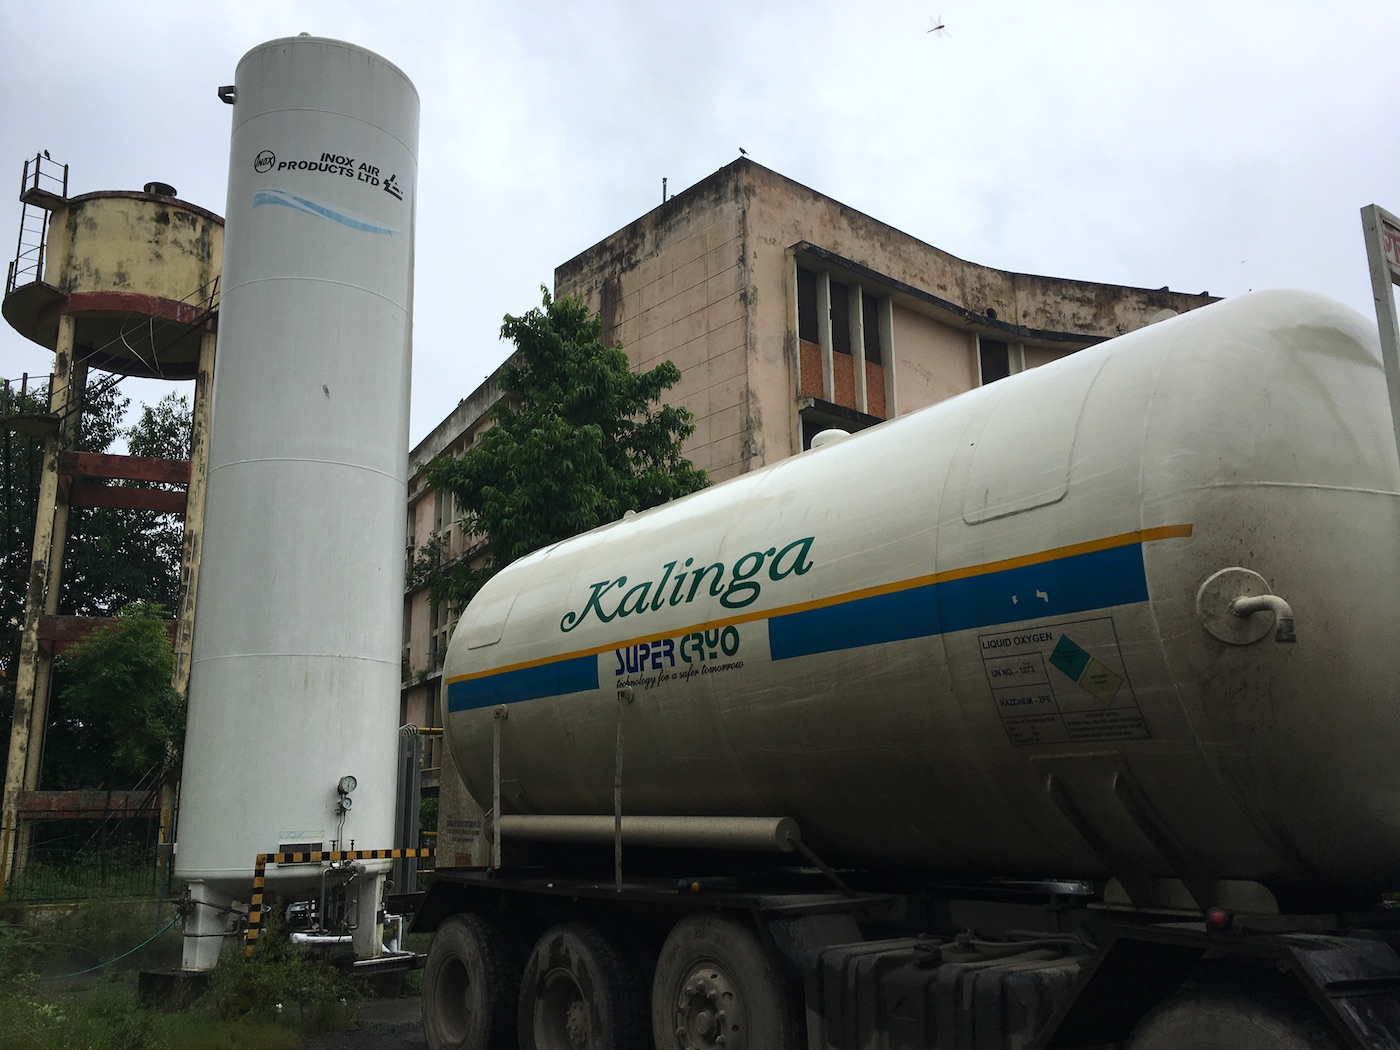 Trucks carrying liquid oxygen outside Gorakhpur hospital. Photo credit: Menaka Rao